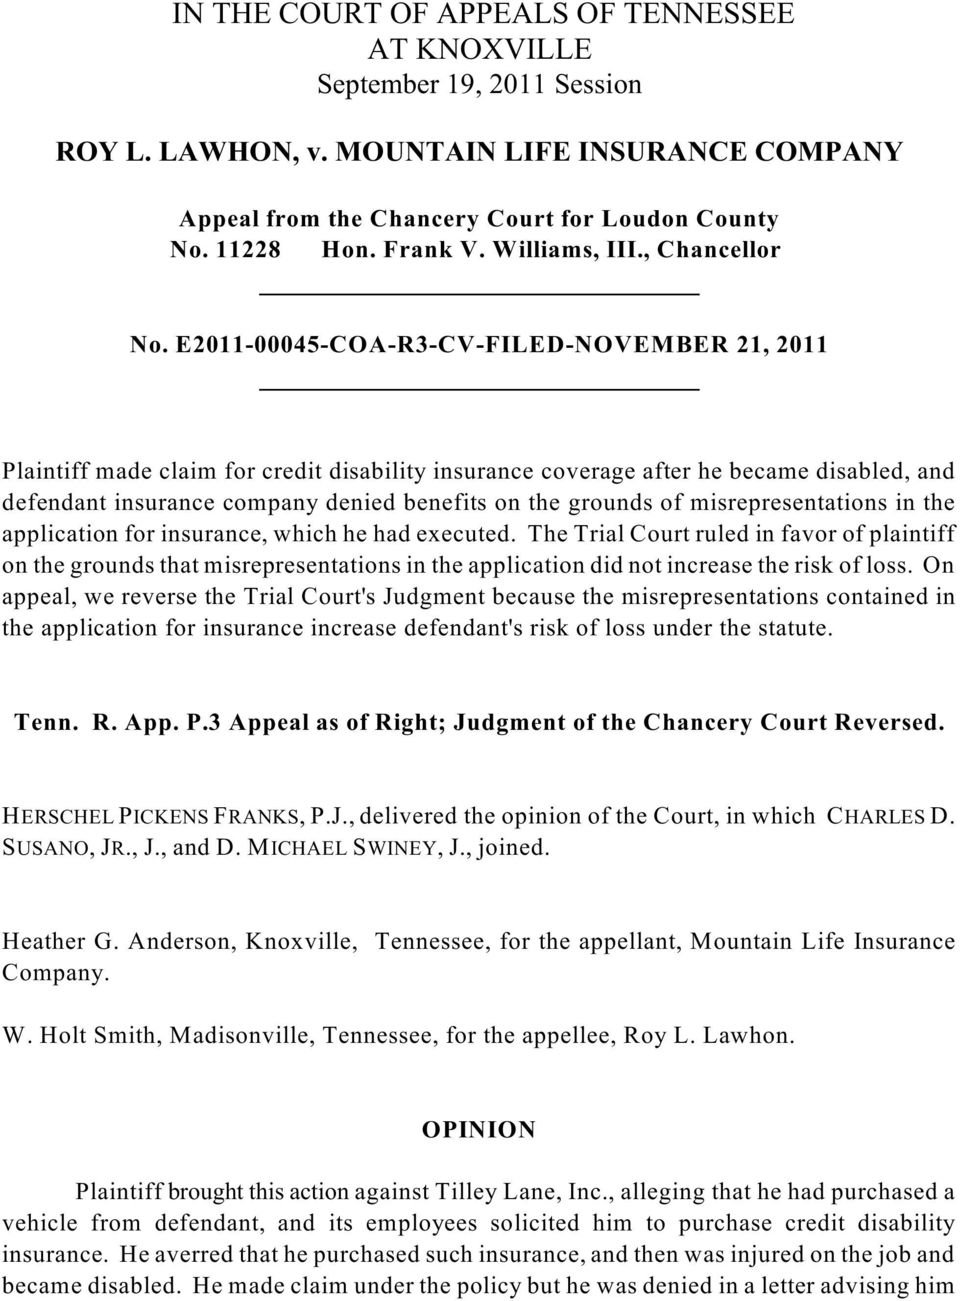 E2011-00045-COA-R3-CV-FILED-NOVEMBER 21, 2011 Plaintiff made claim for credit disability insurance coverage after he became disabled, and defendant insurance company denied benefits on the grounds of